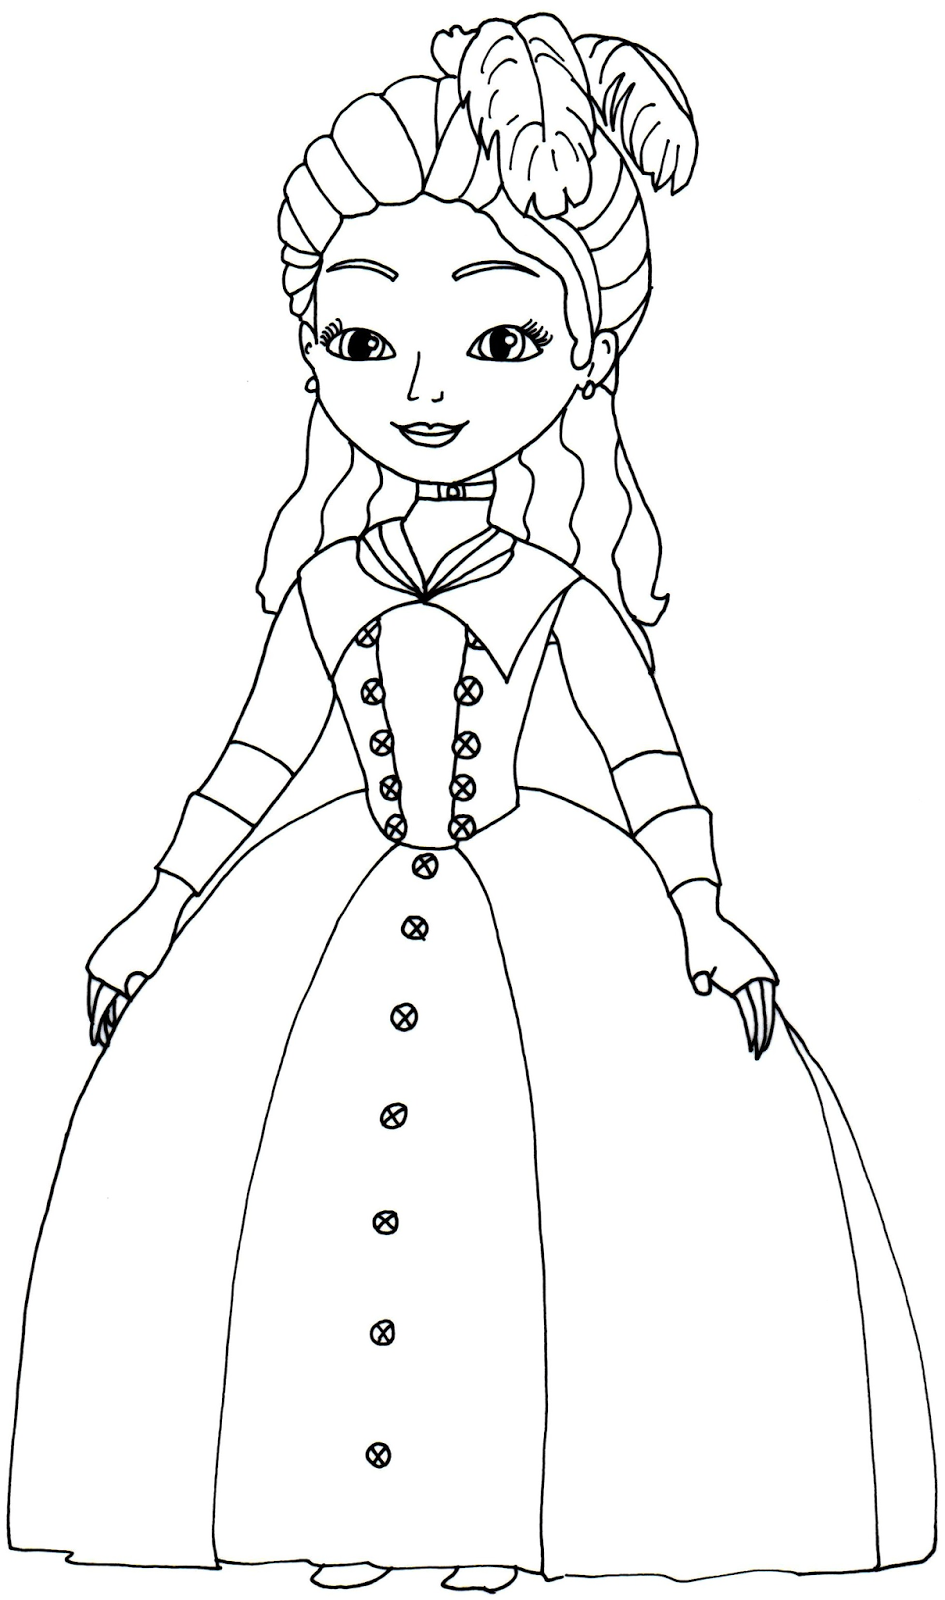 Princess Clio Sofia The First Coloring Page Princess Coloring